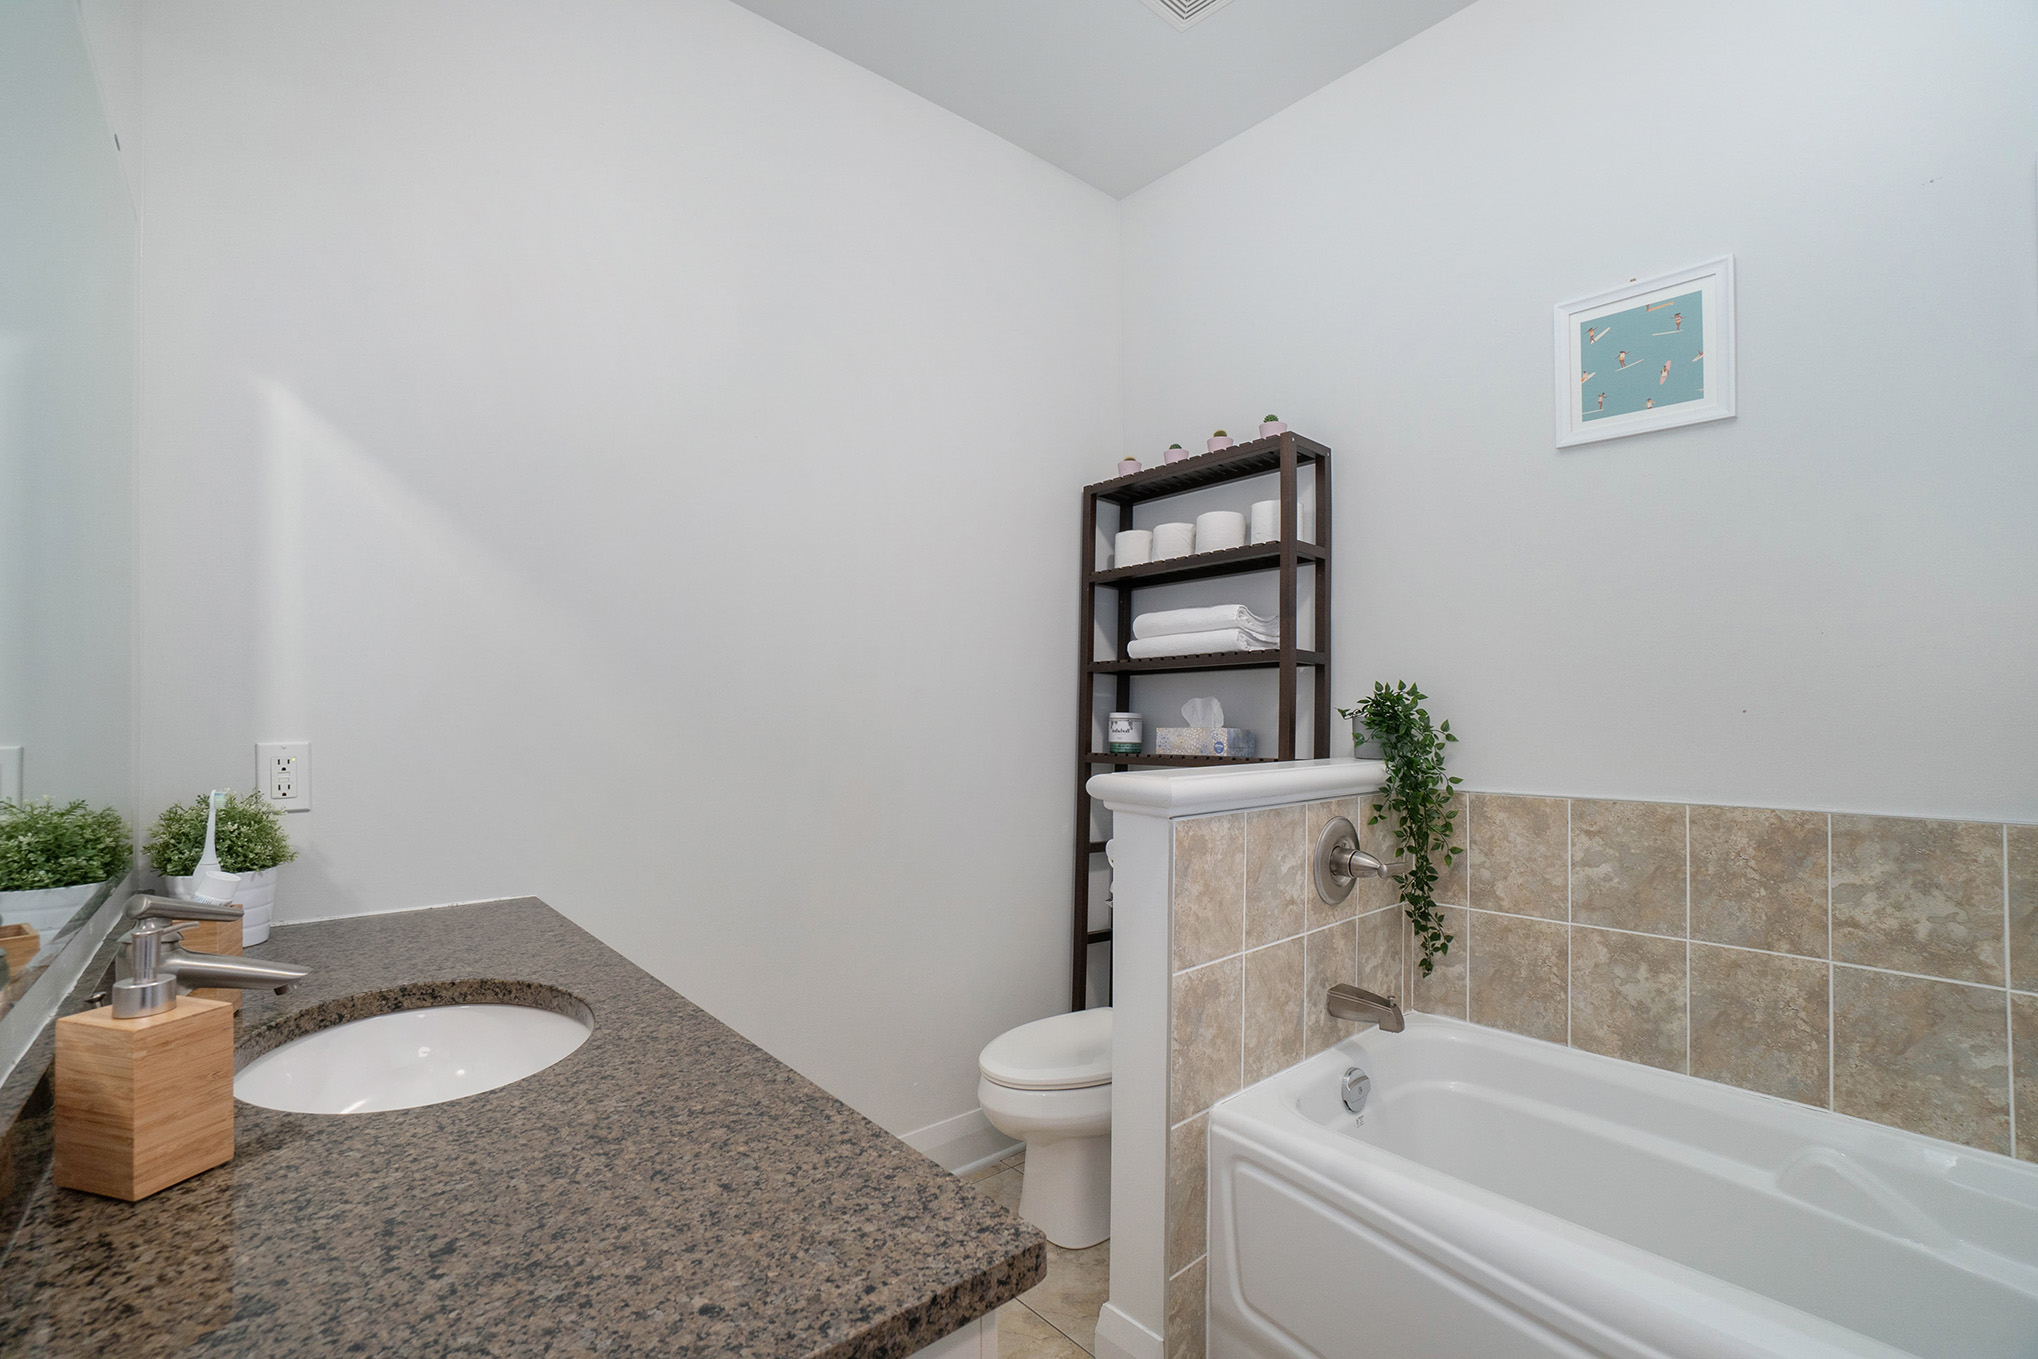 4 Piece spa like ensuite bath with large soaker tub and glass enclosed shower.